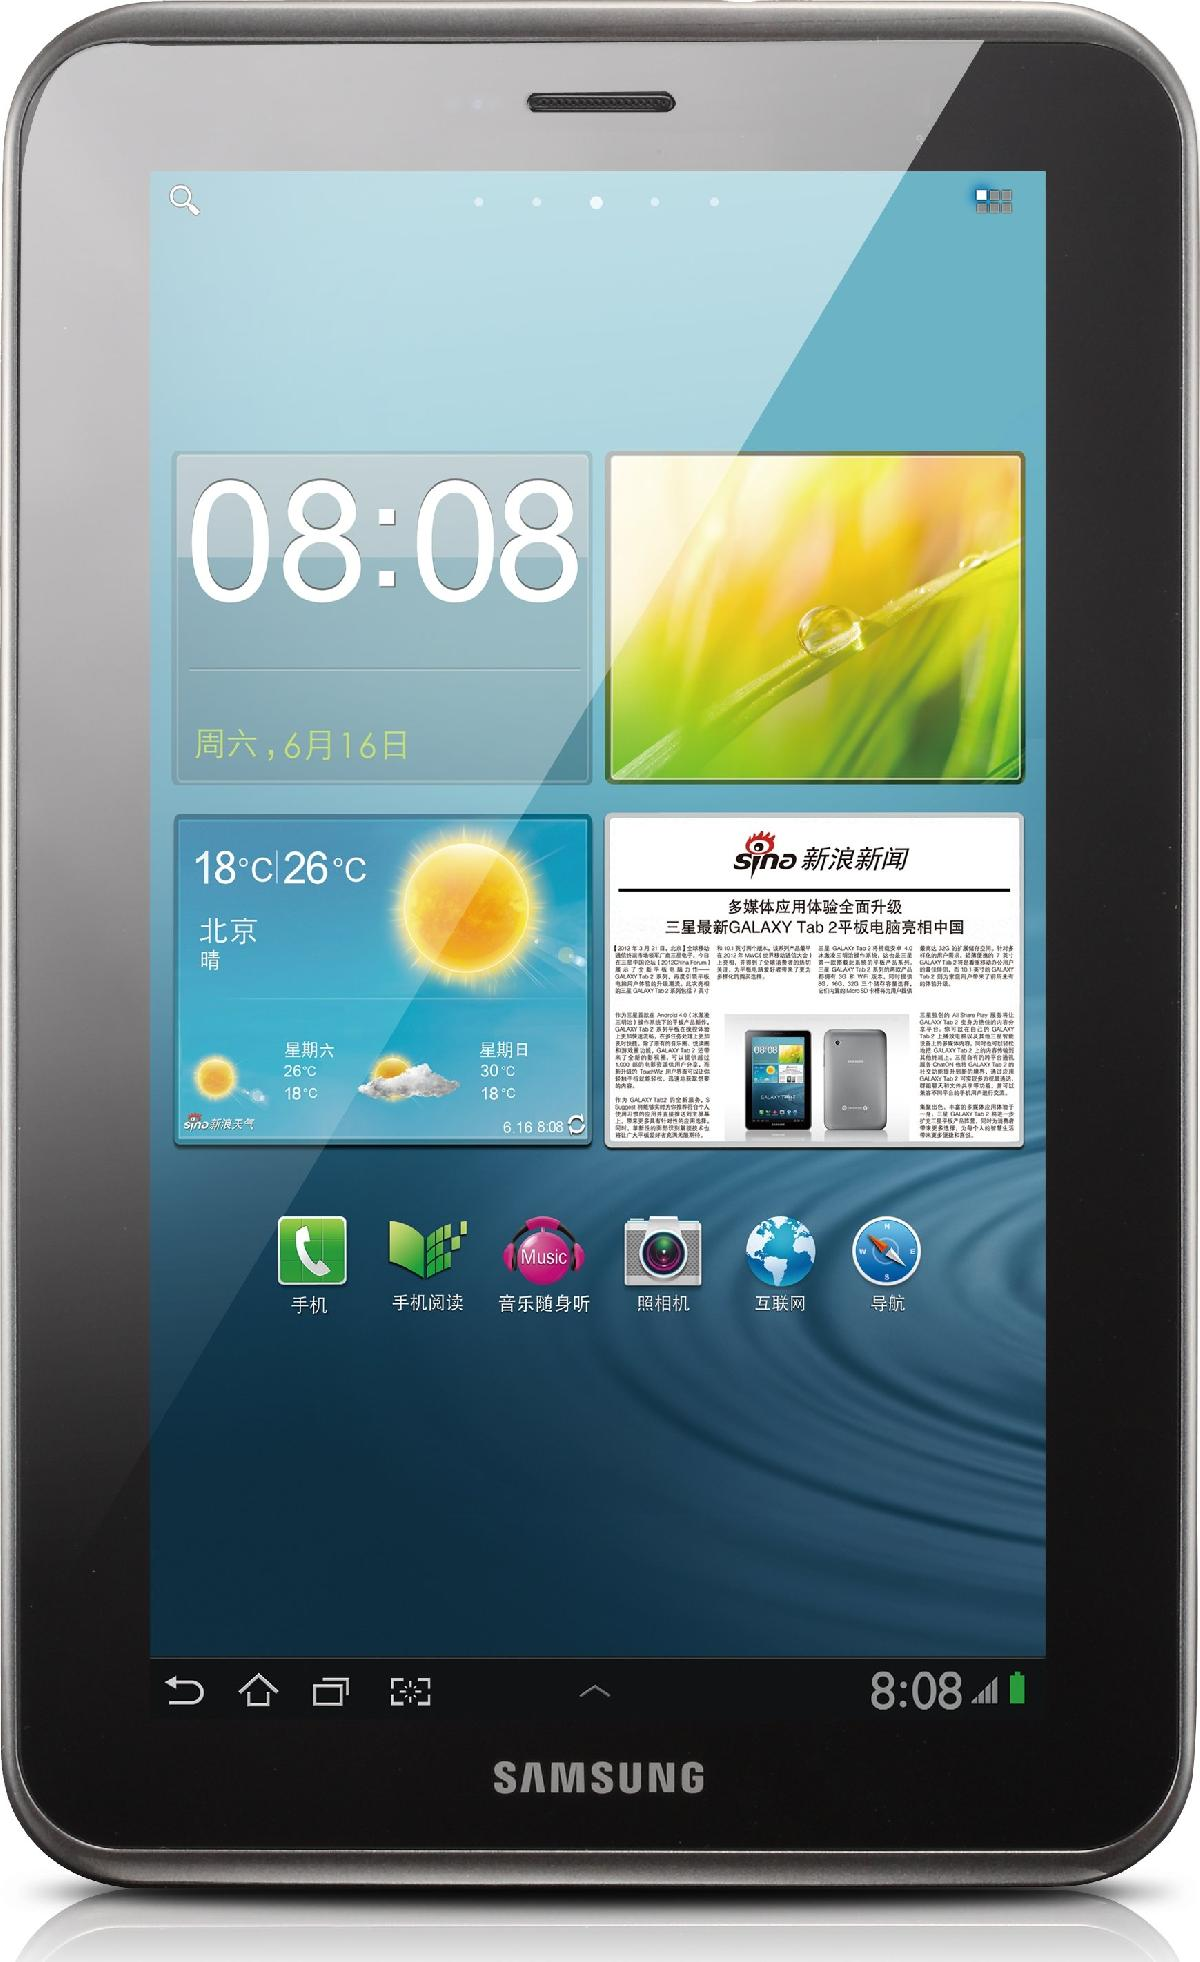 Galaxy Tab 2 7.0 (Chinese) GT-P3108